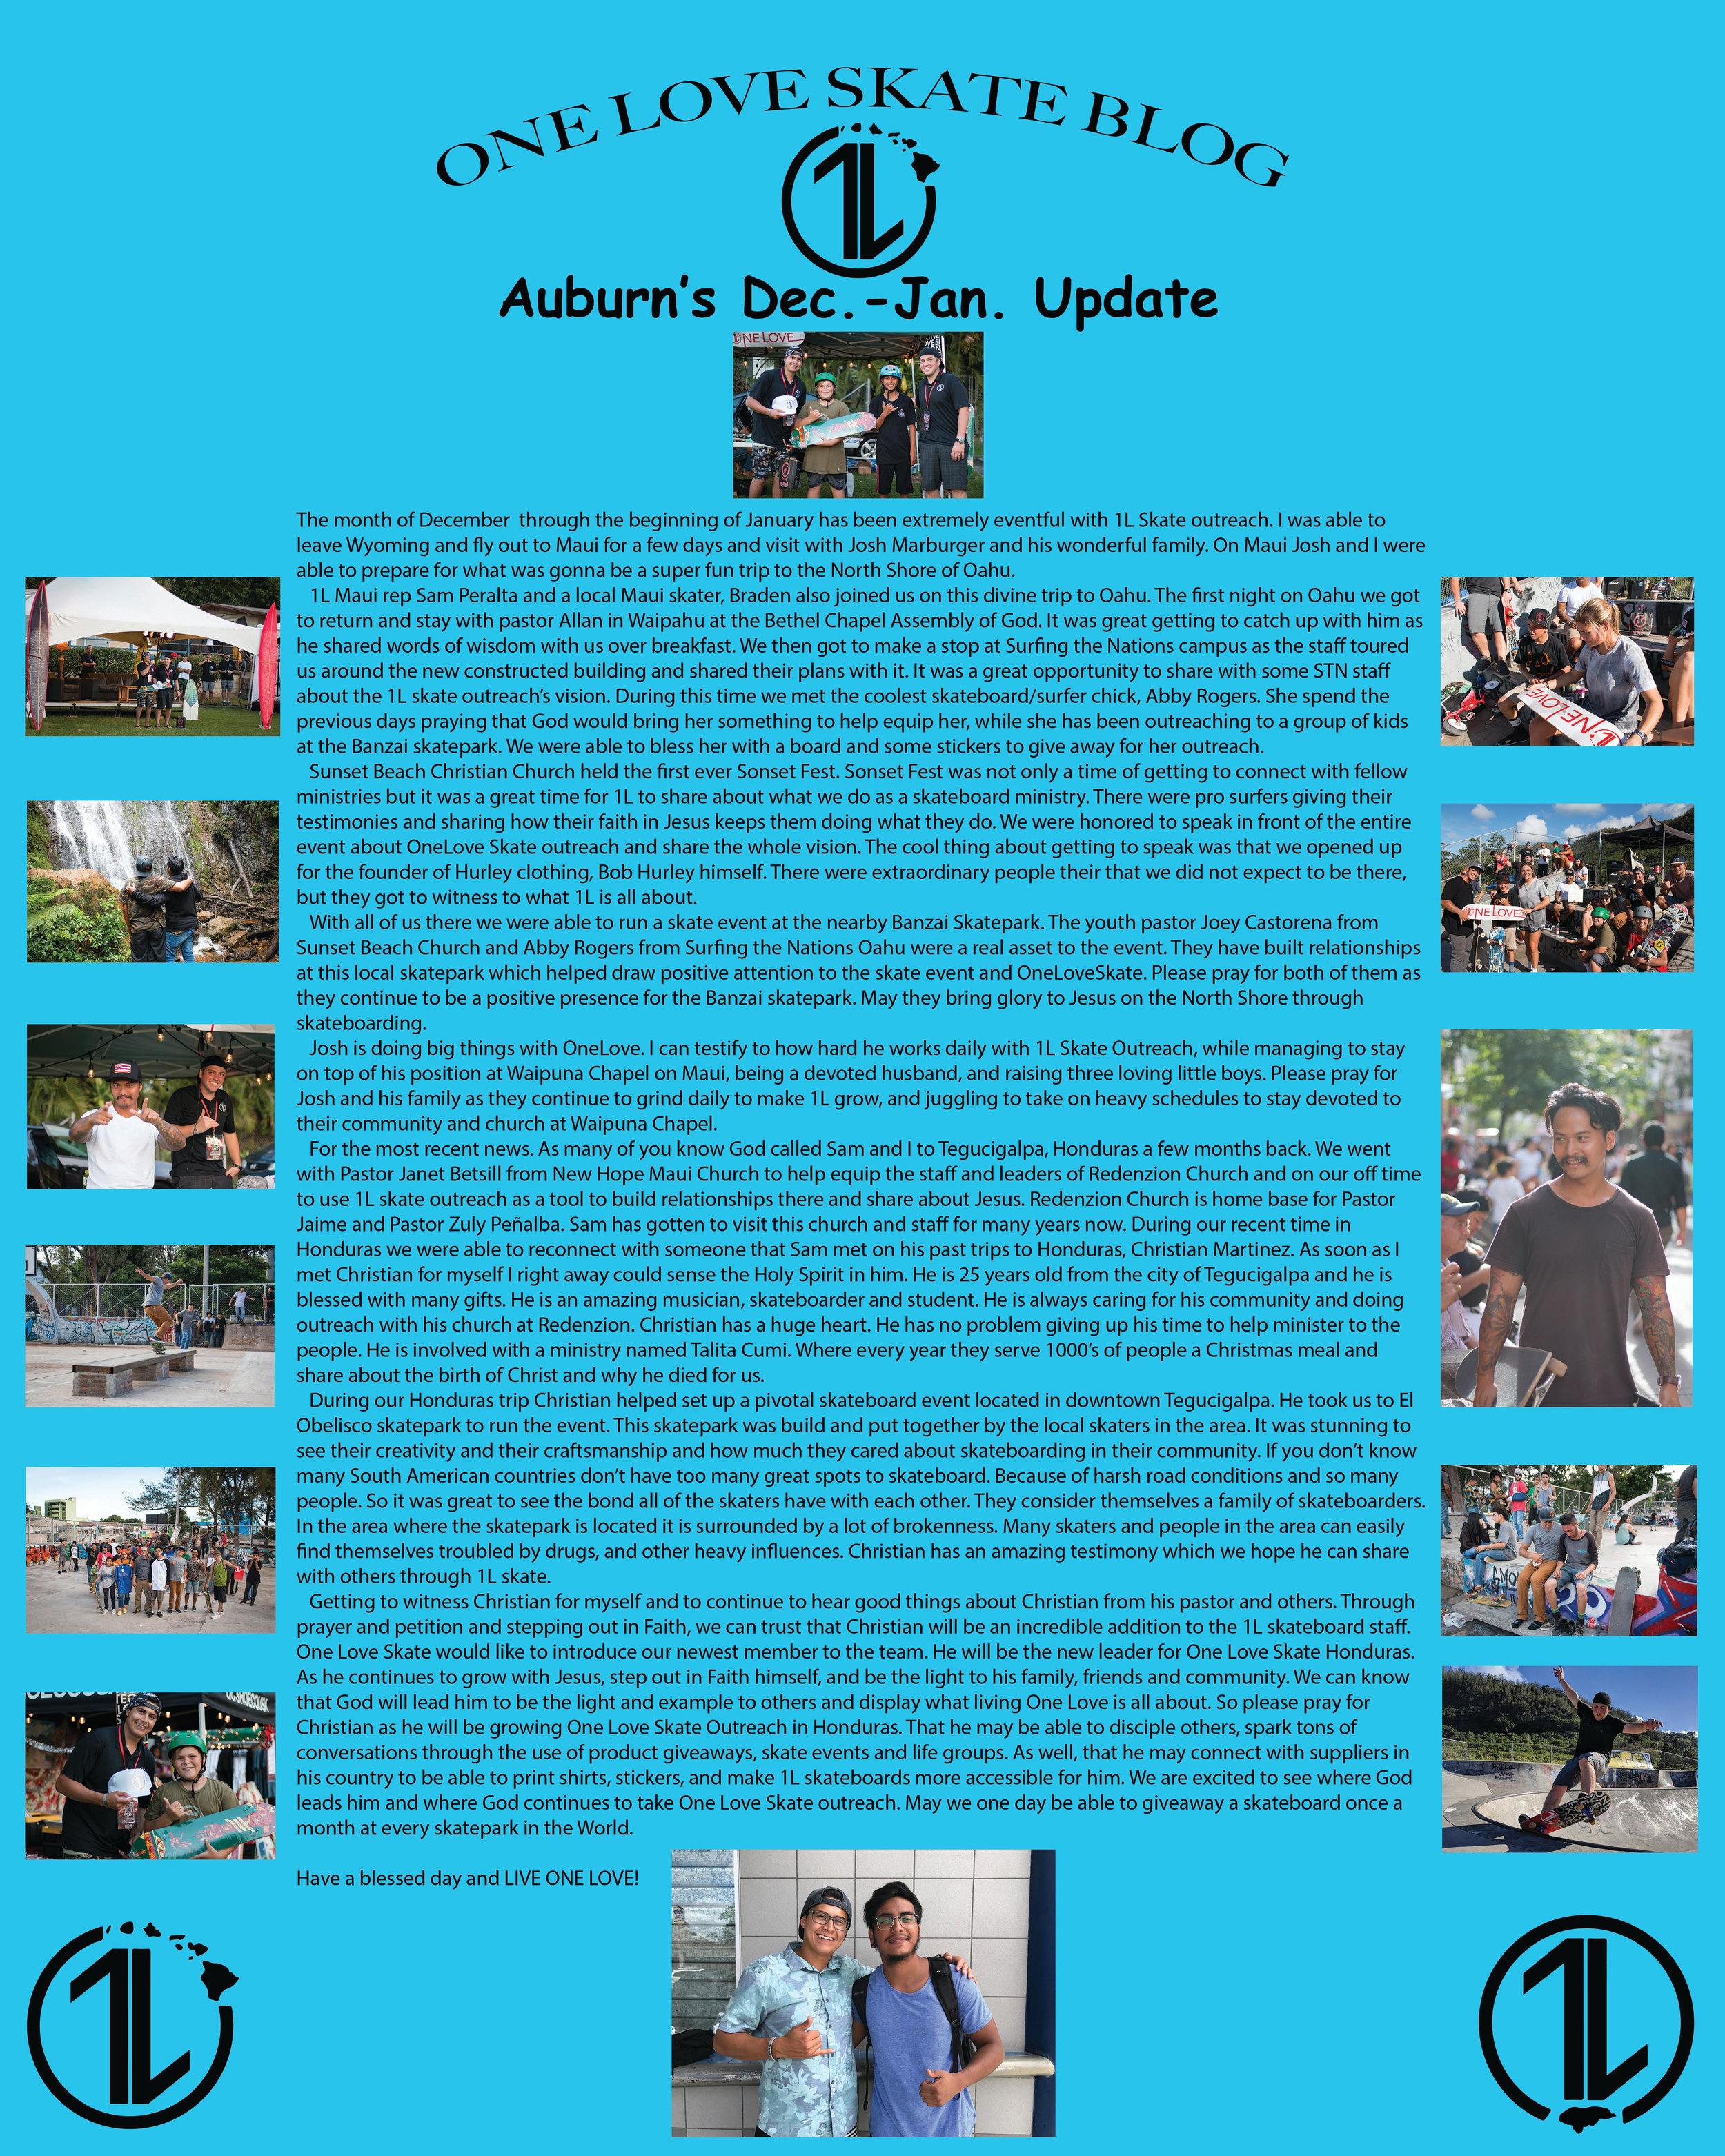 Click To Check Out This December / January 1L Update from Auburn